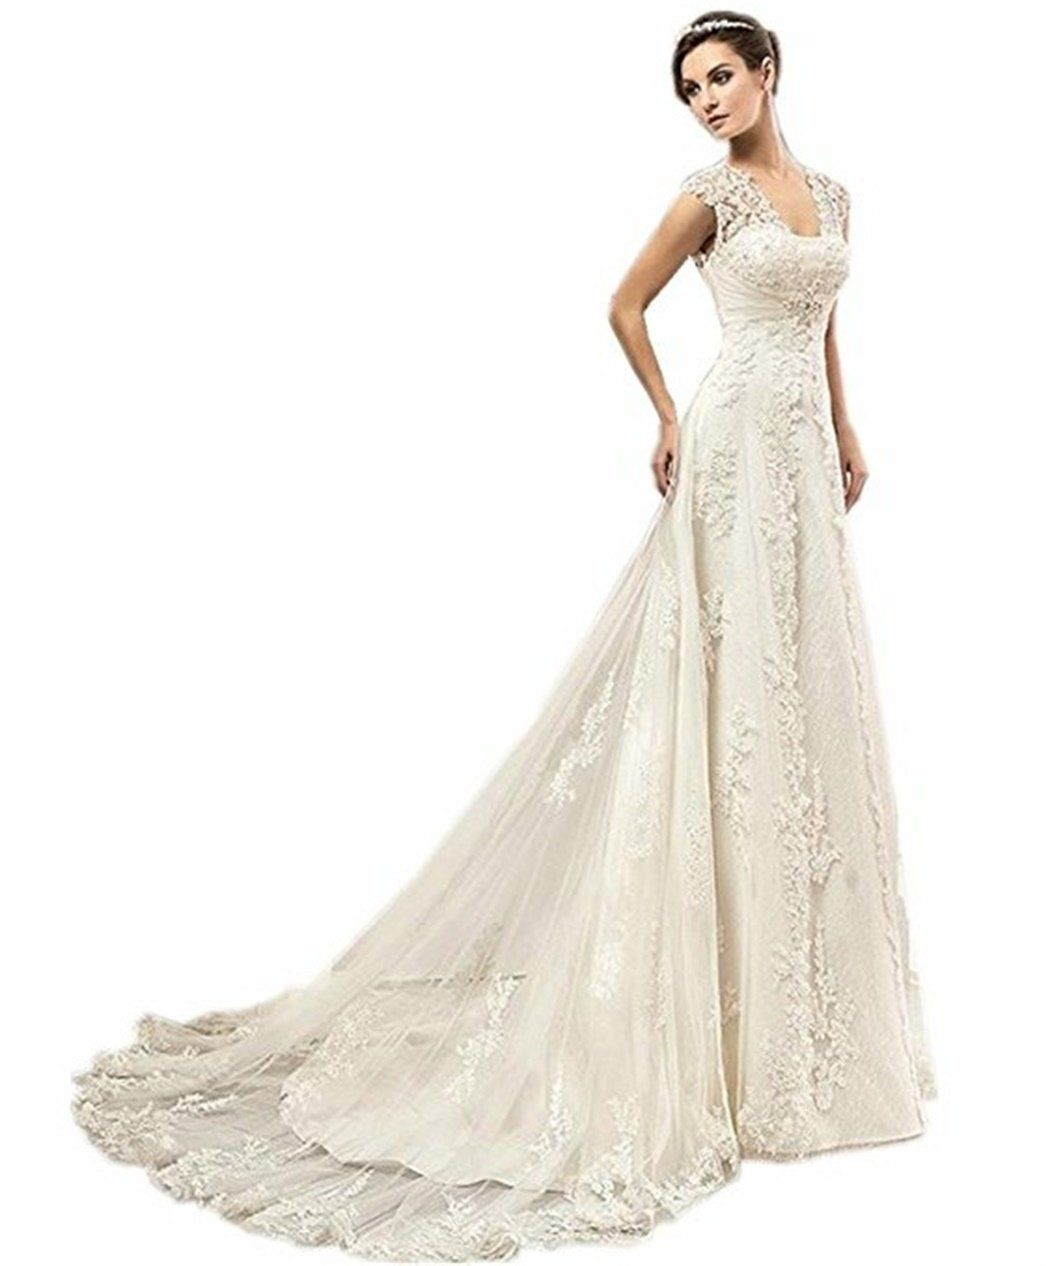 Vepycly womenus sexy cap sleeve beaded lace wedding dress for bride